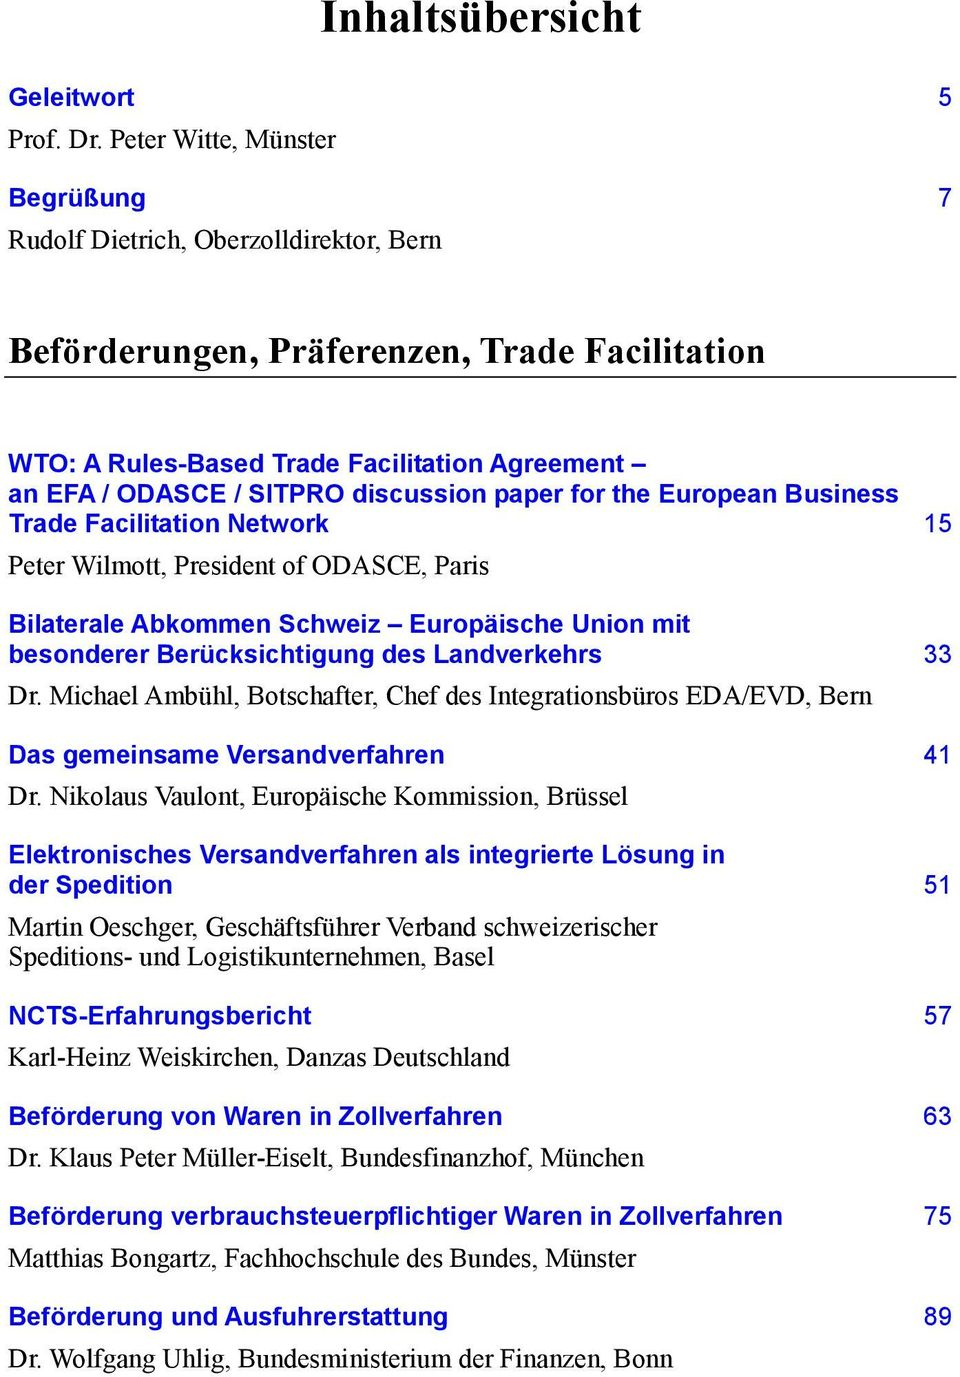 discussion paper for the European Business Trade Facilitation Network 15 Peter Wilmott, President of ODASCE, Paris Bilaterale Abkommen Schweiz Europäische Union mit besonderer Berücksichtigung des